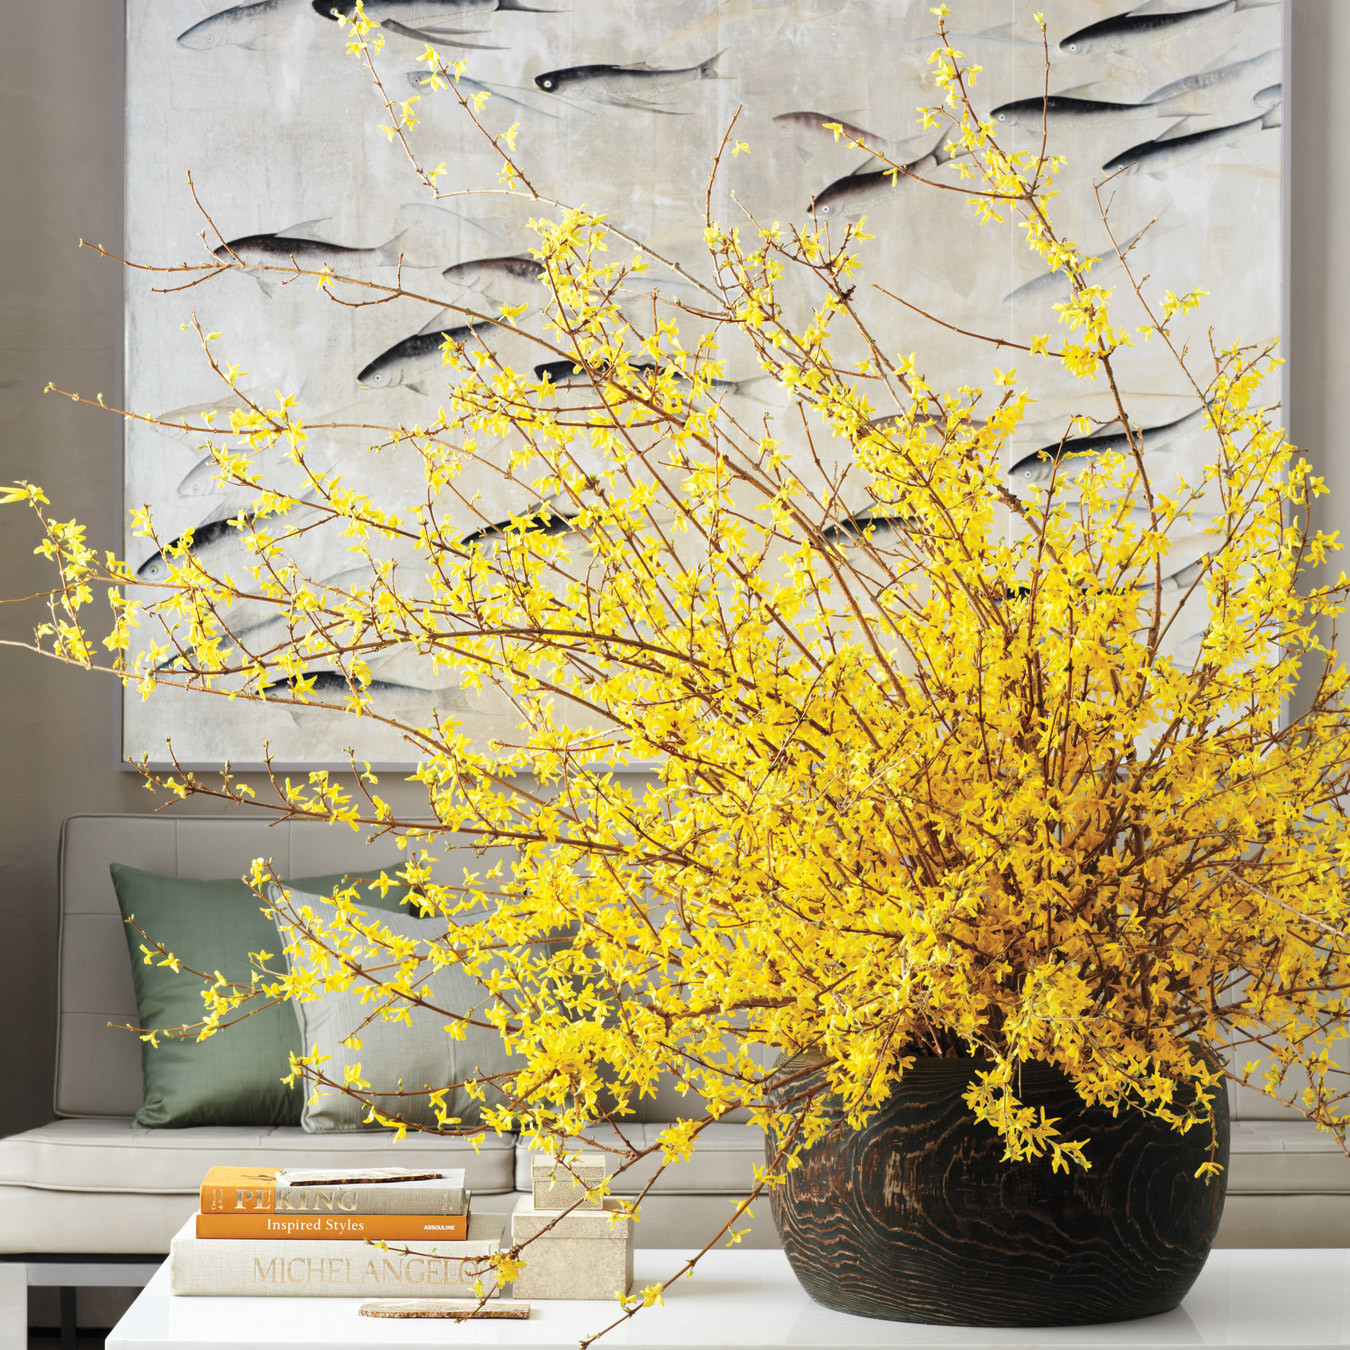 25 Modern Decor Ideas With Floral Fabric Prints And Textiles: Home Design: Forsythia